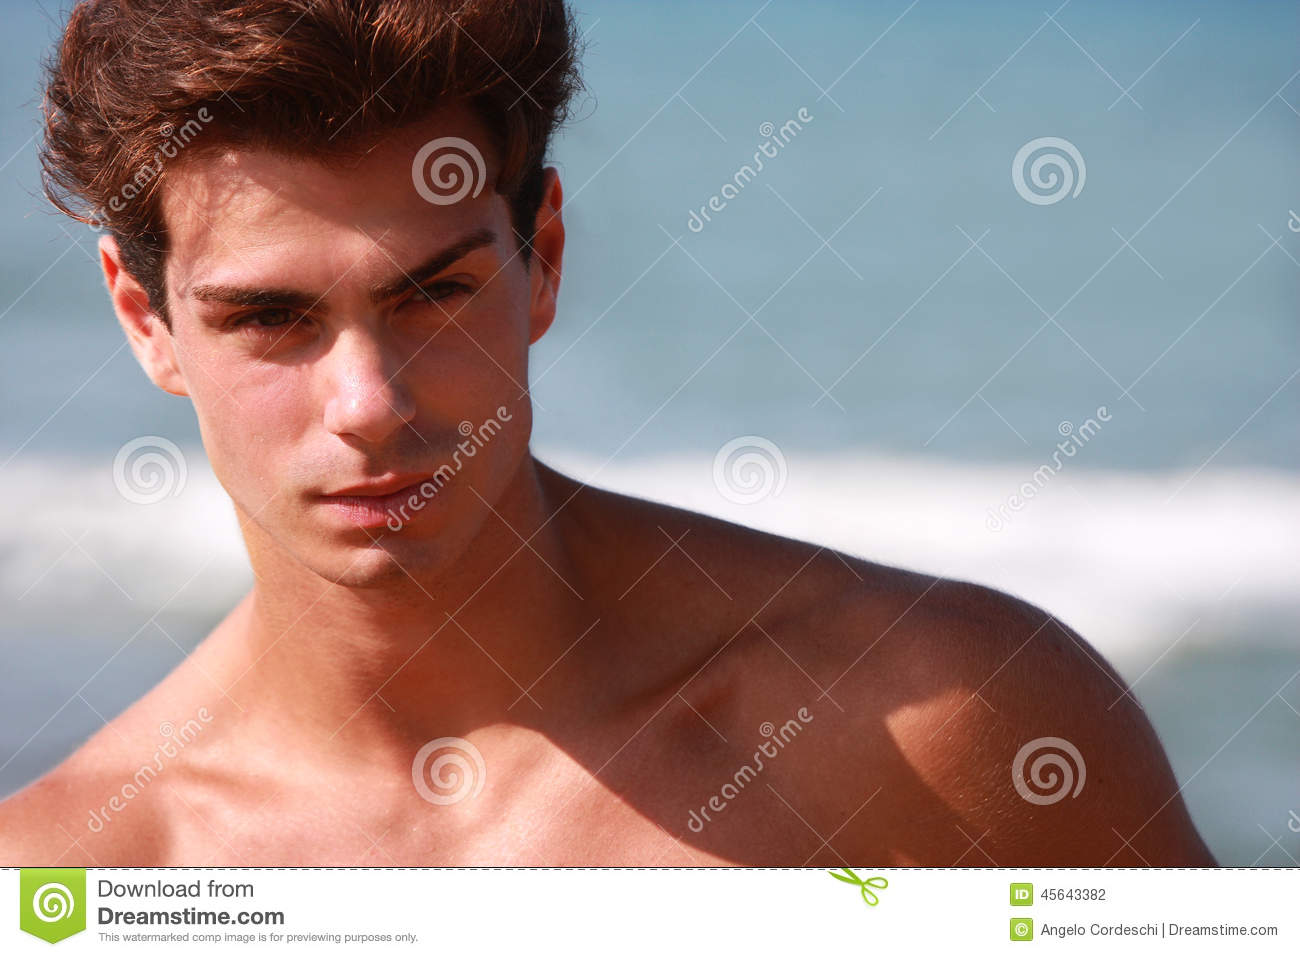 Beautiful And Muscular Young Man Shirtless Portrait Stock Photo - Image 45643382-7964